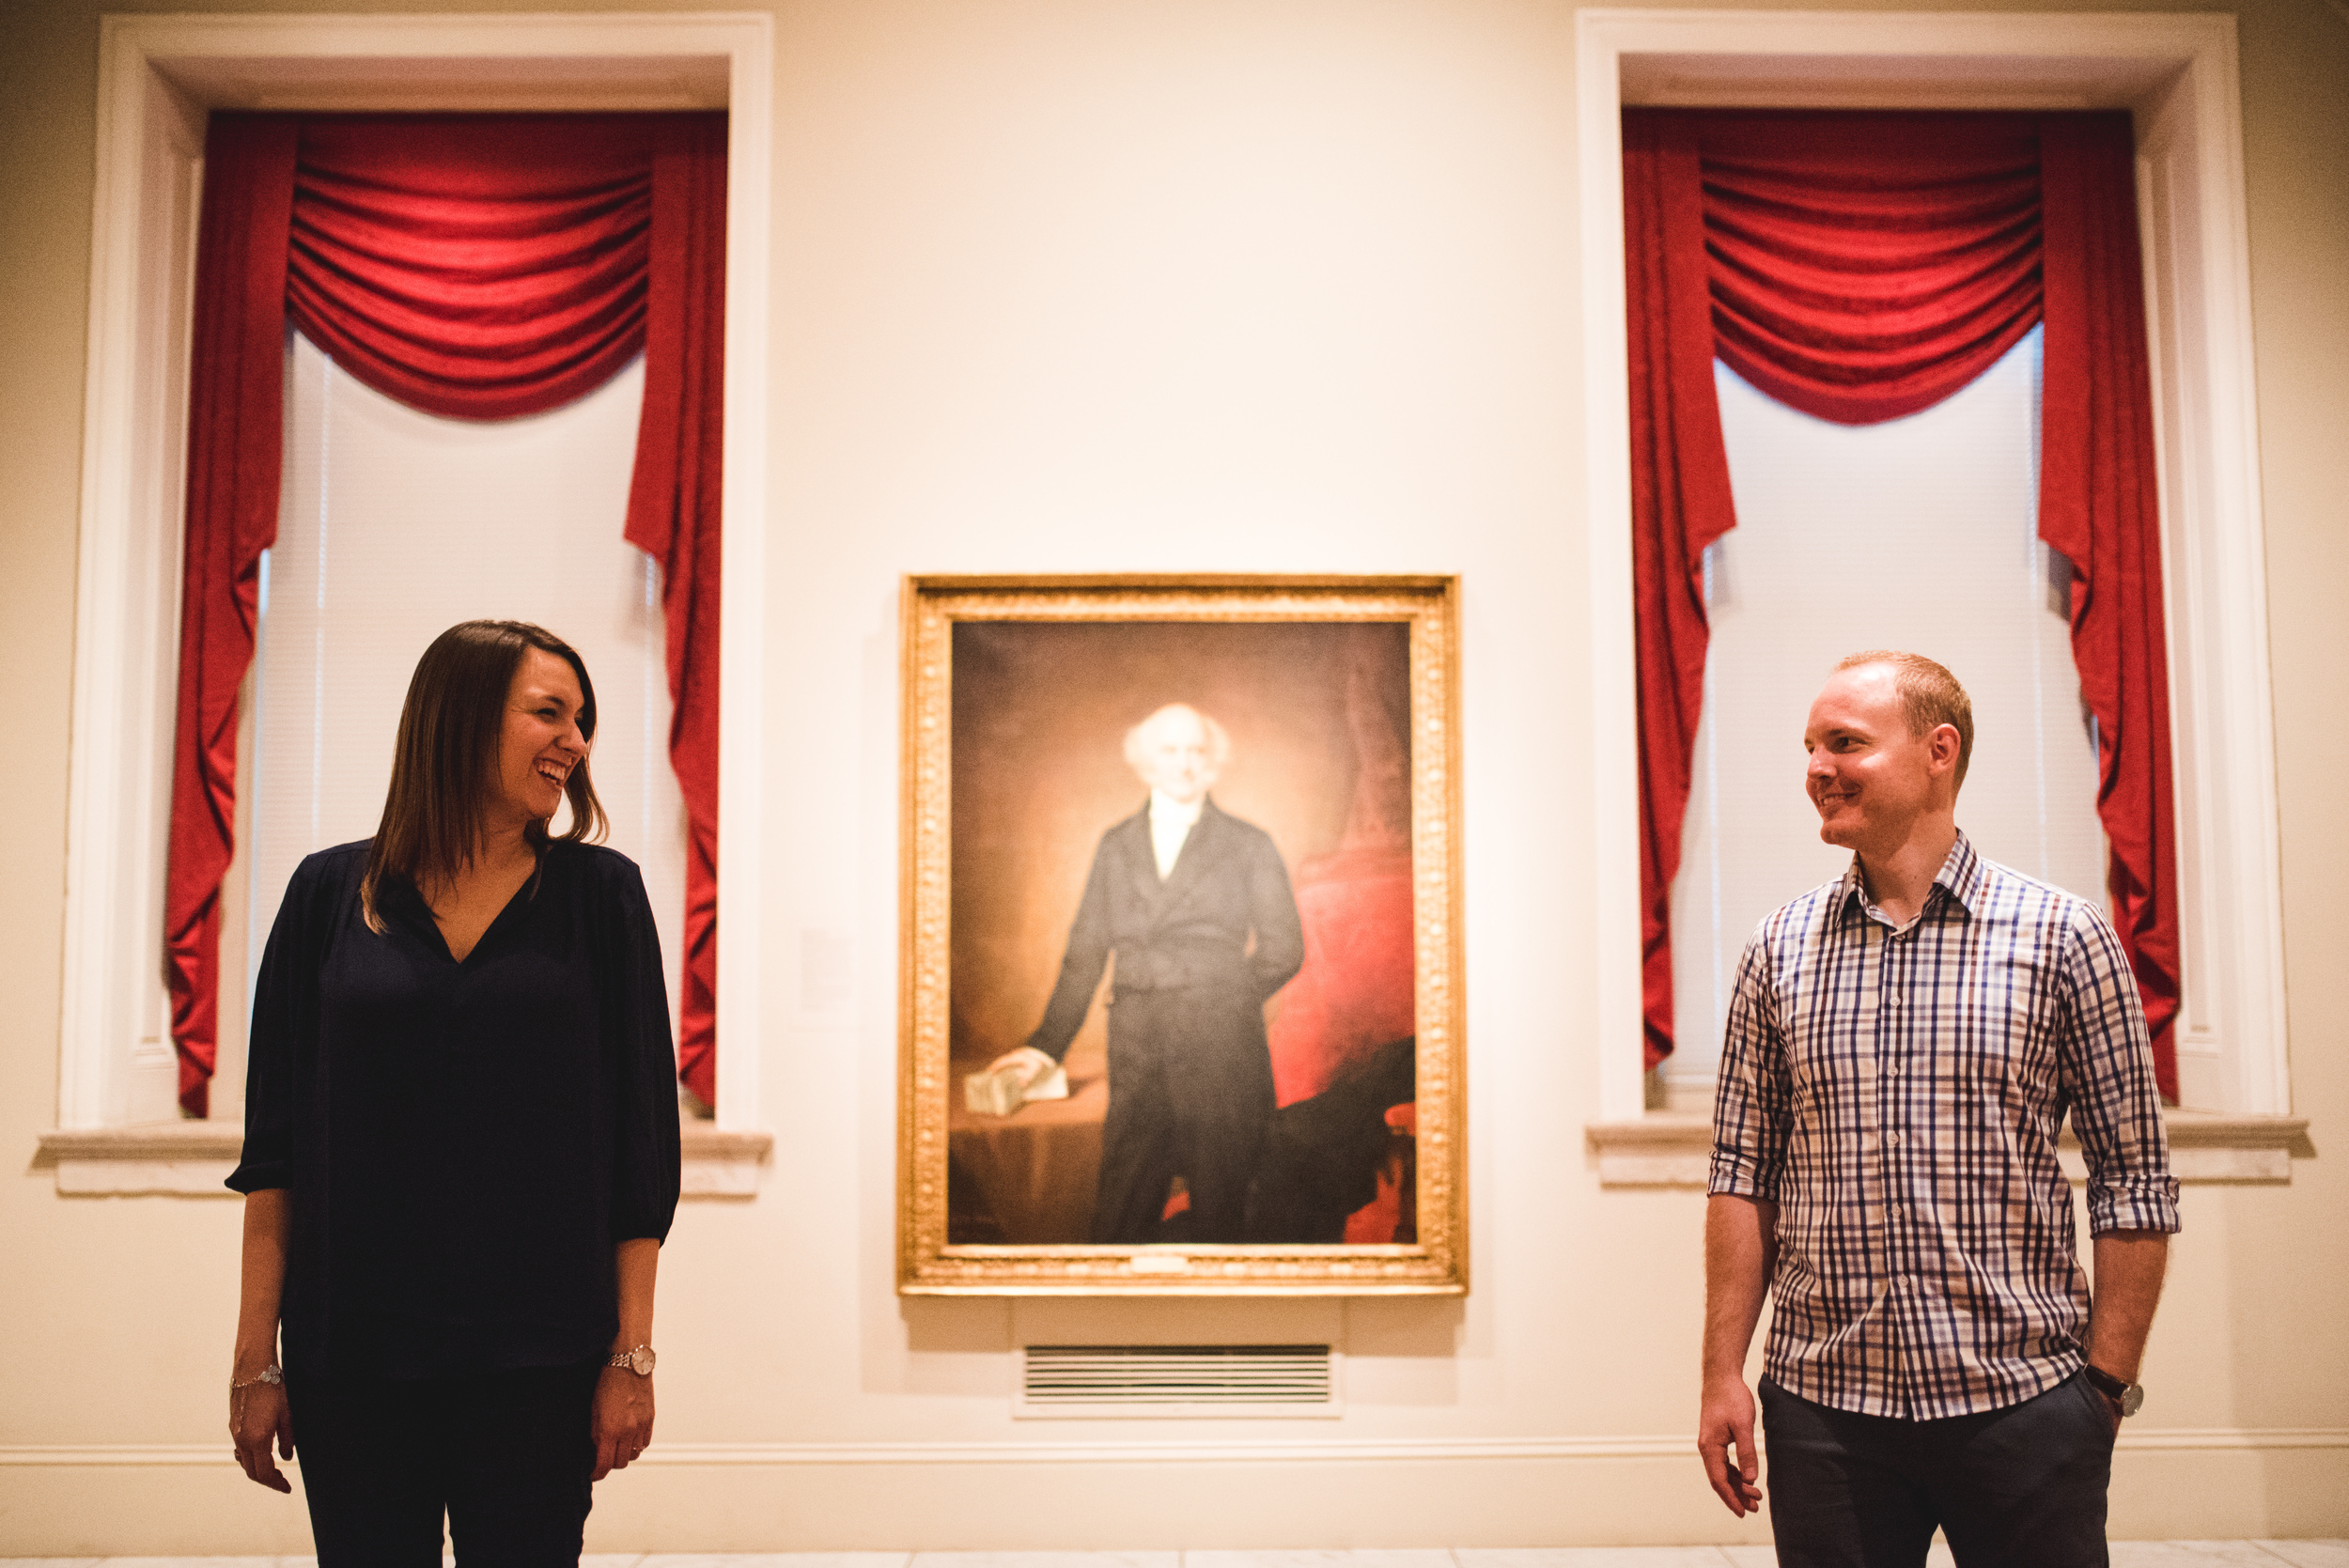 Smithsonian American Art Museum engagement session by Mantas Kubilinskas-12.jpg